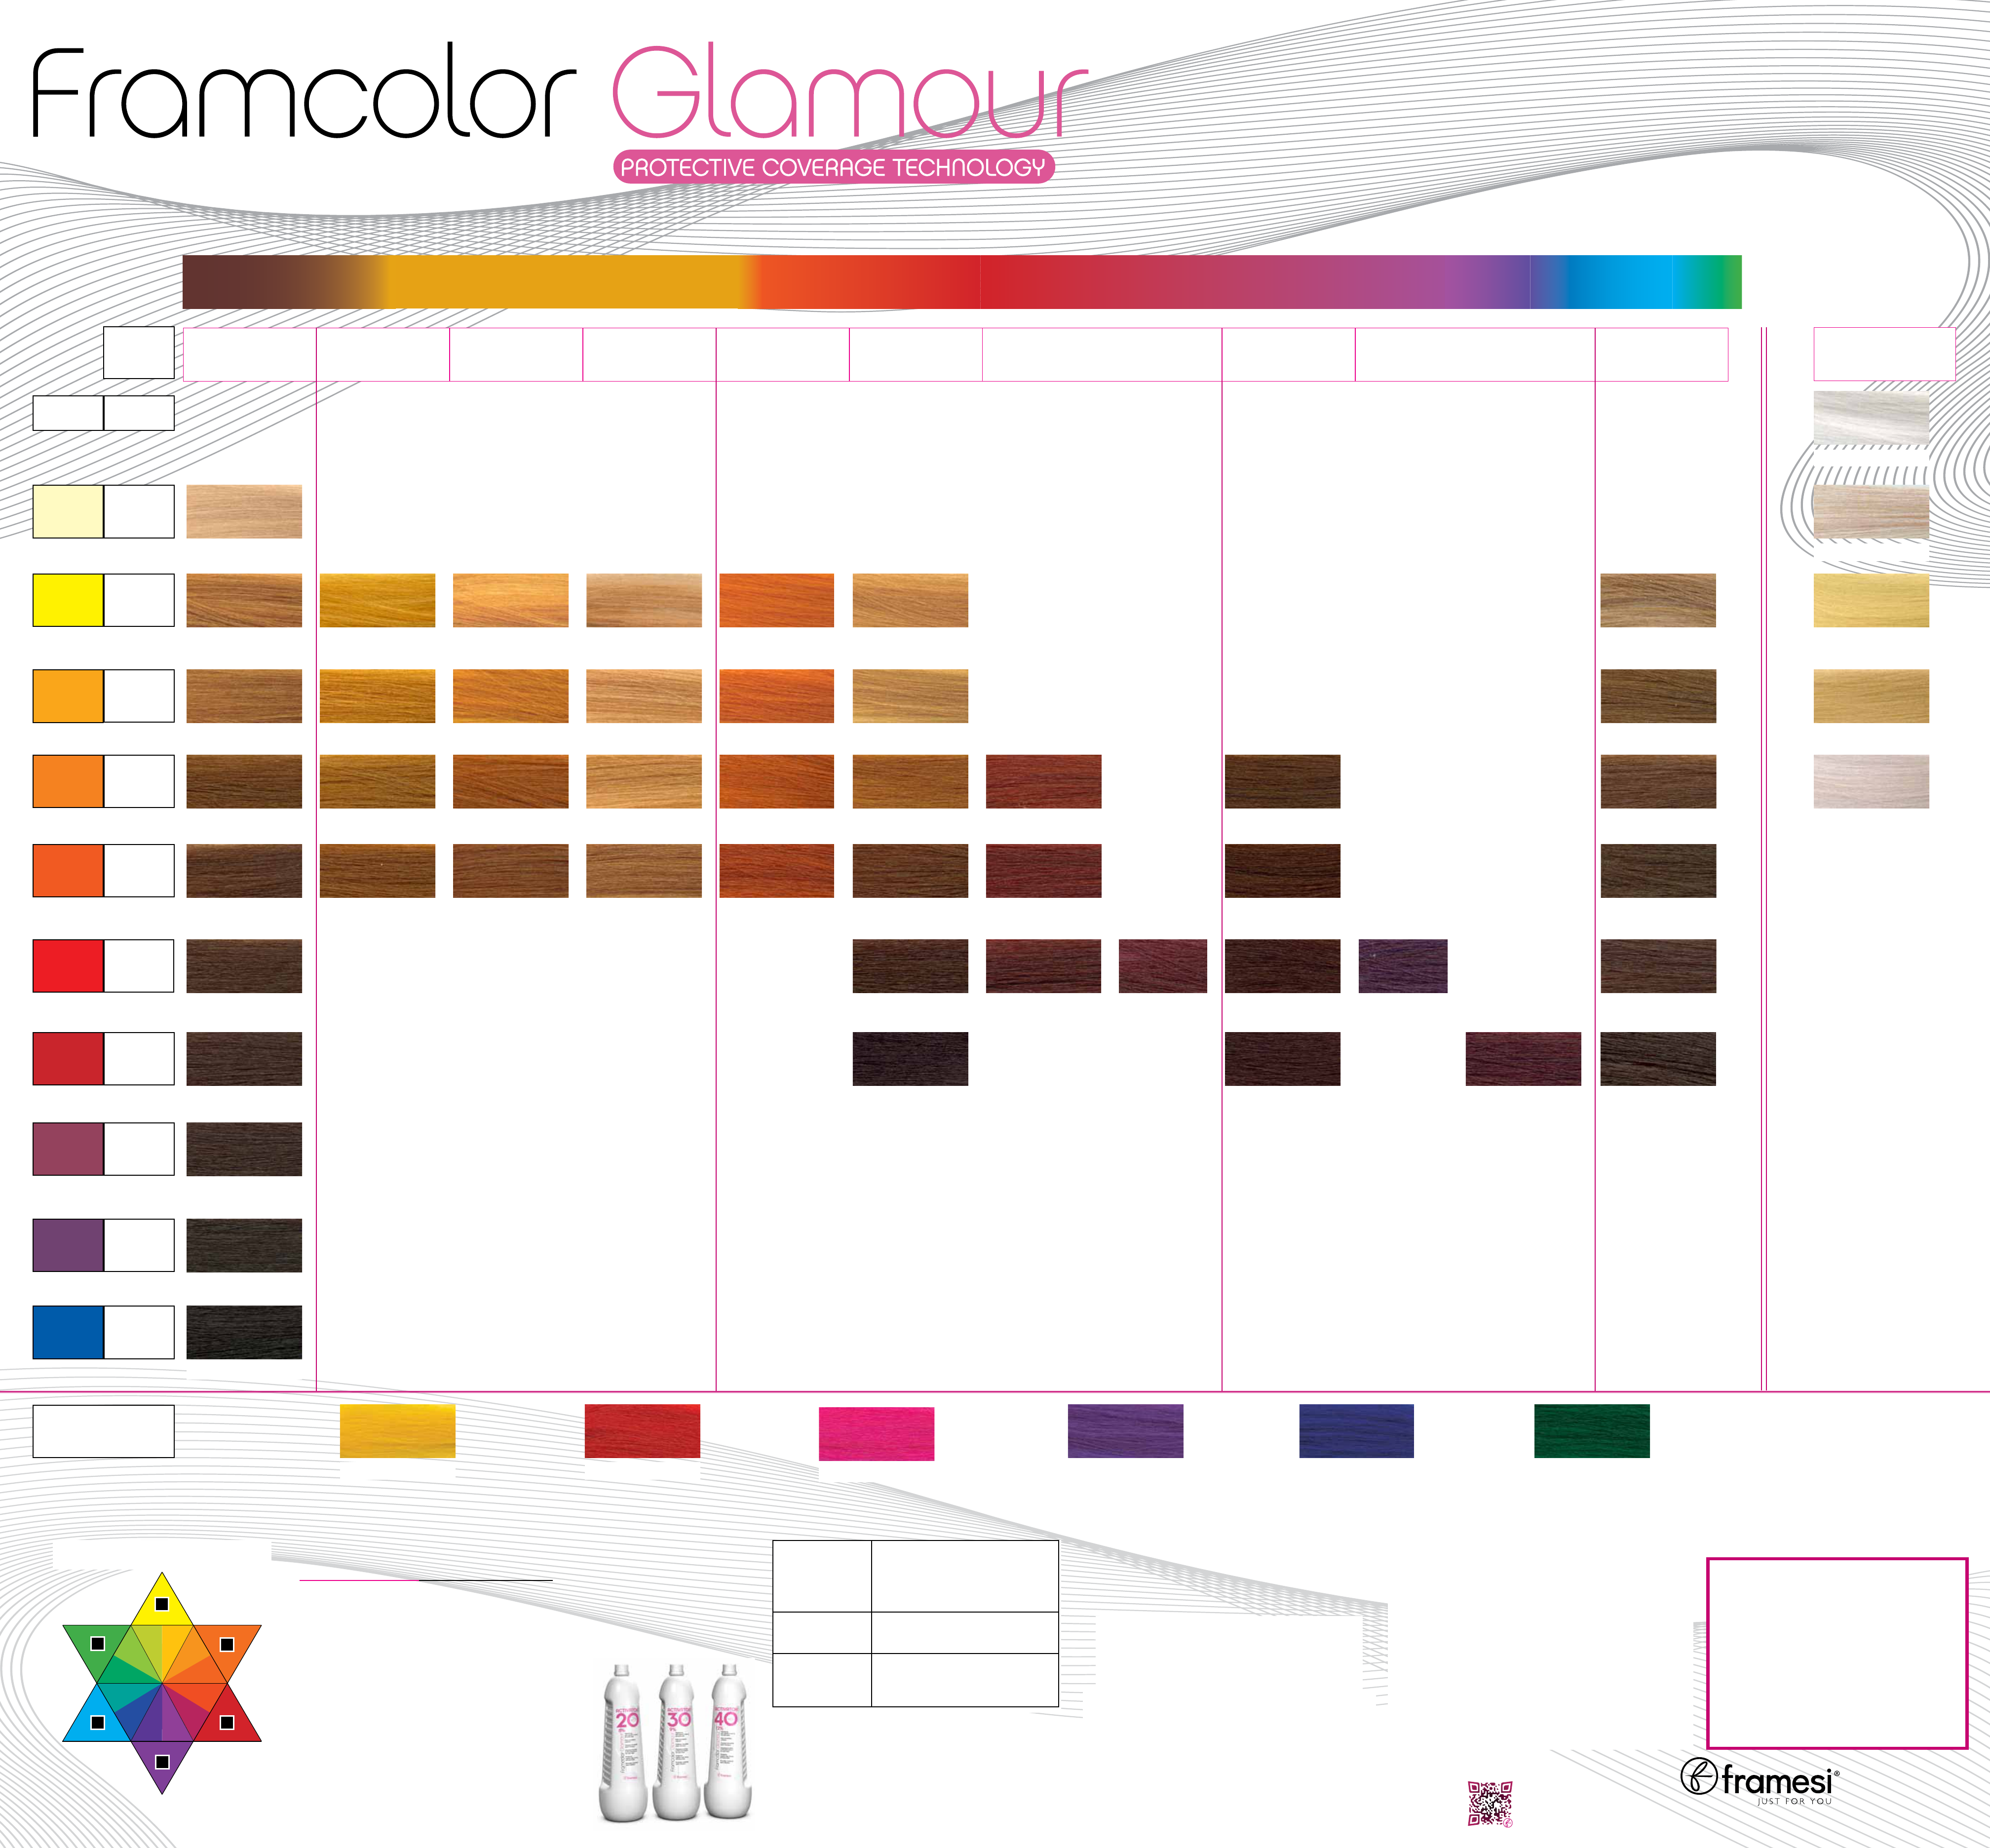 Free framcolor glamour hair color wall chart pdf 788kb 1 pages framcolor glamour hair color wall chart geenschuldenfo Image collections